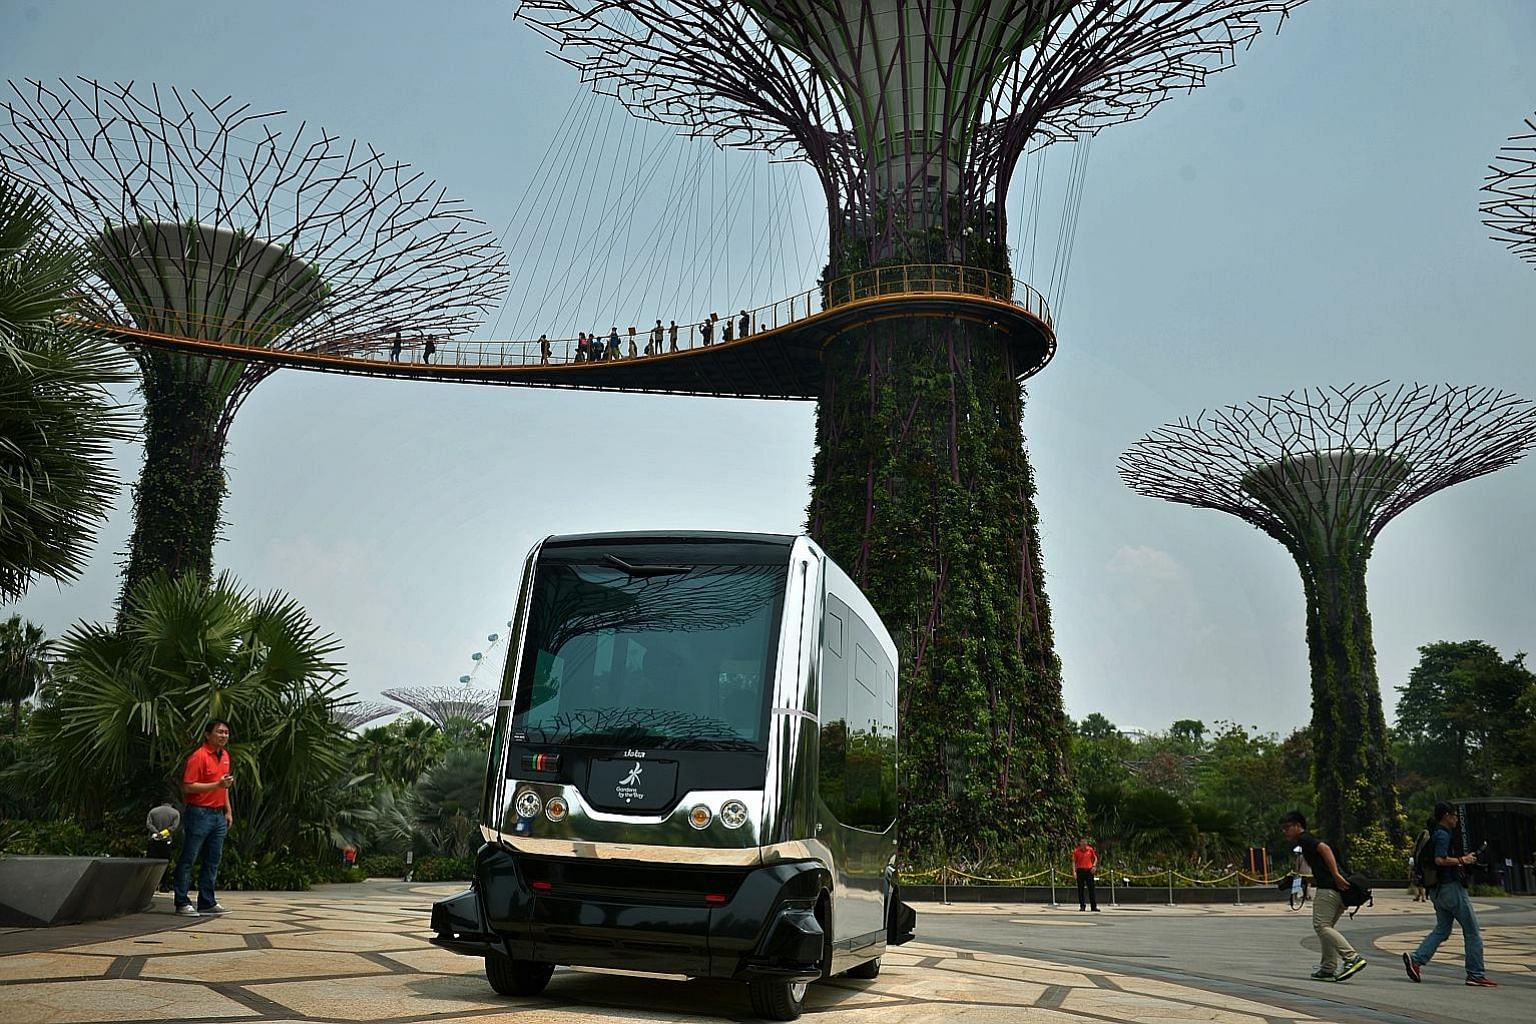 The Auto Rider autonomous vehicle (AV) has been on trial at Gardens by the Bay since October 2015. The AV revolution is being hailed as the next wave in public transportation here, with driverless taxis and buses expected to start making an impact wi